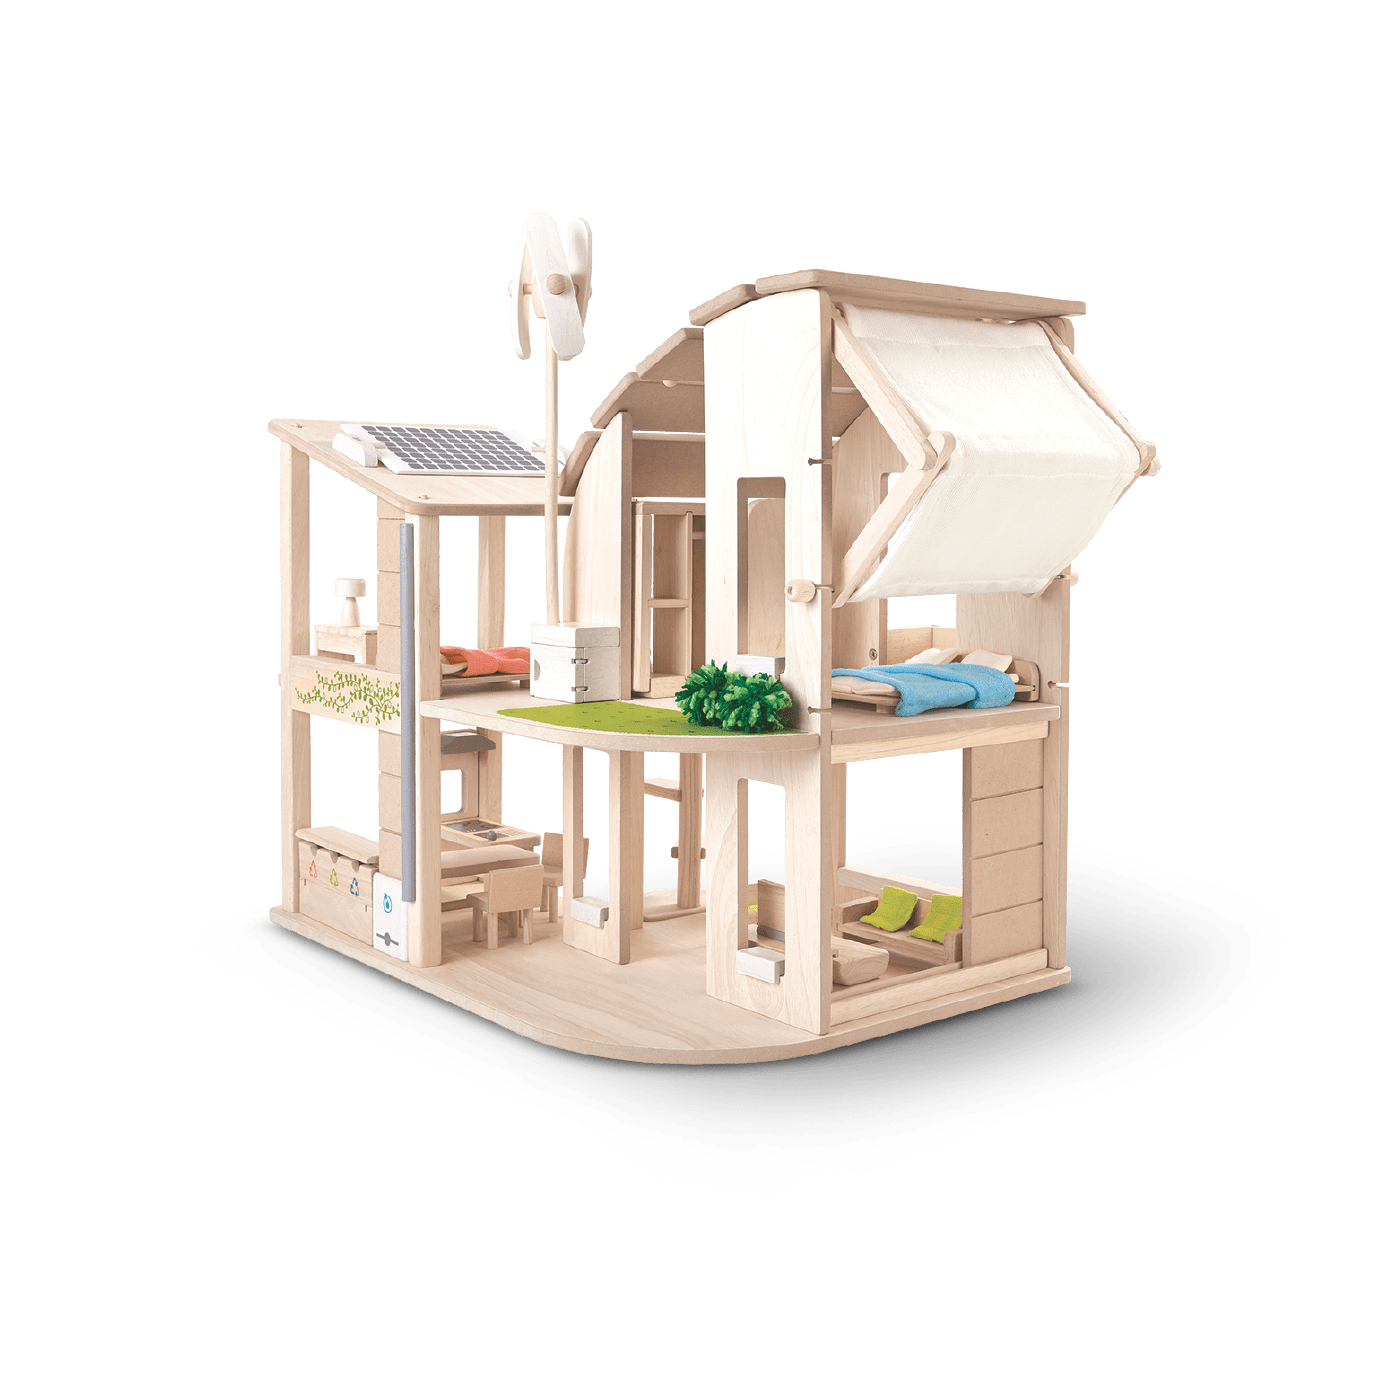 7156_PlanToys_GREEN_DOLLHOUSE_WITH_FURNITURE_Pretend_Play_Imagination_Coordination_Language_and_Communications_Social_Fine_Motor_3yrs_Wooden_toys_Education_toys_Safety_Toys_Non-toxic_0.png